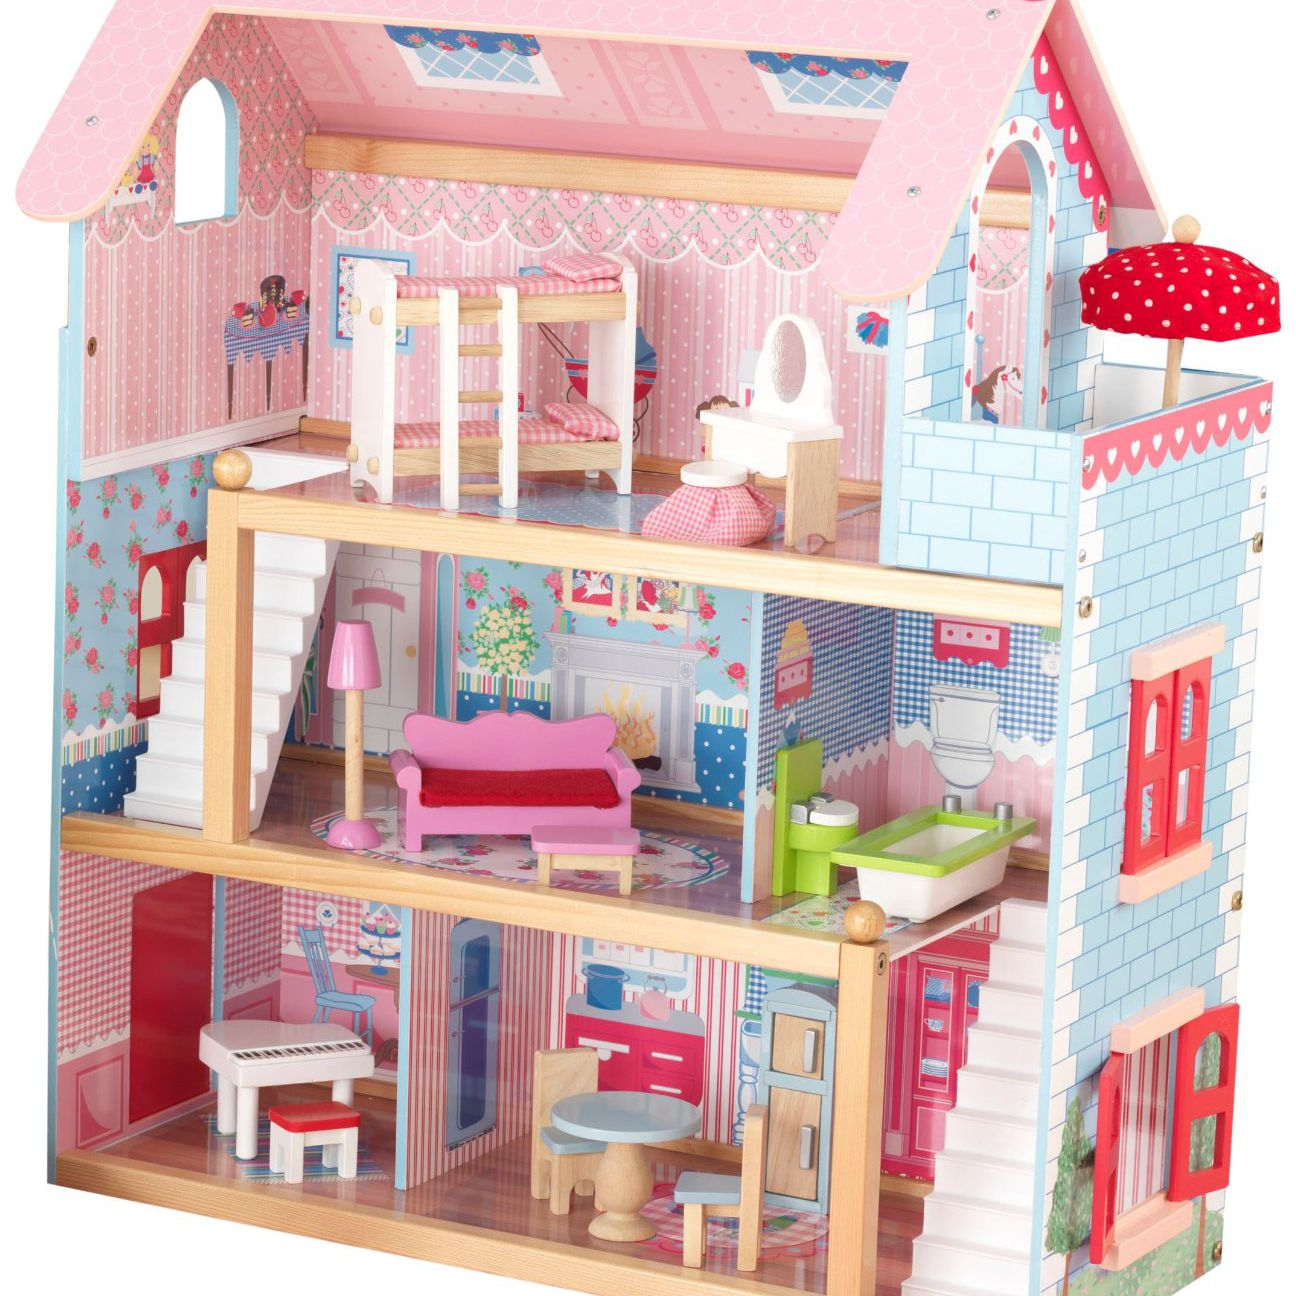 The 14 Best Dollhouses For Kids In 2020